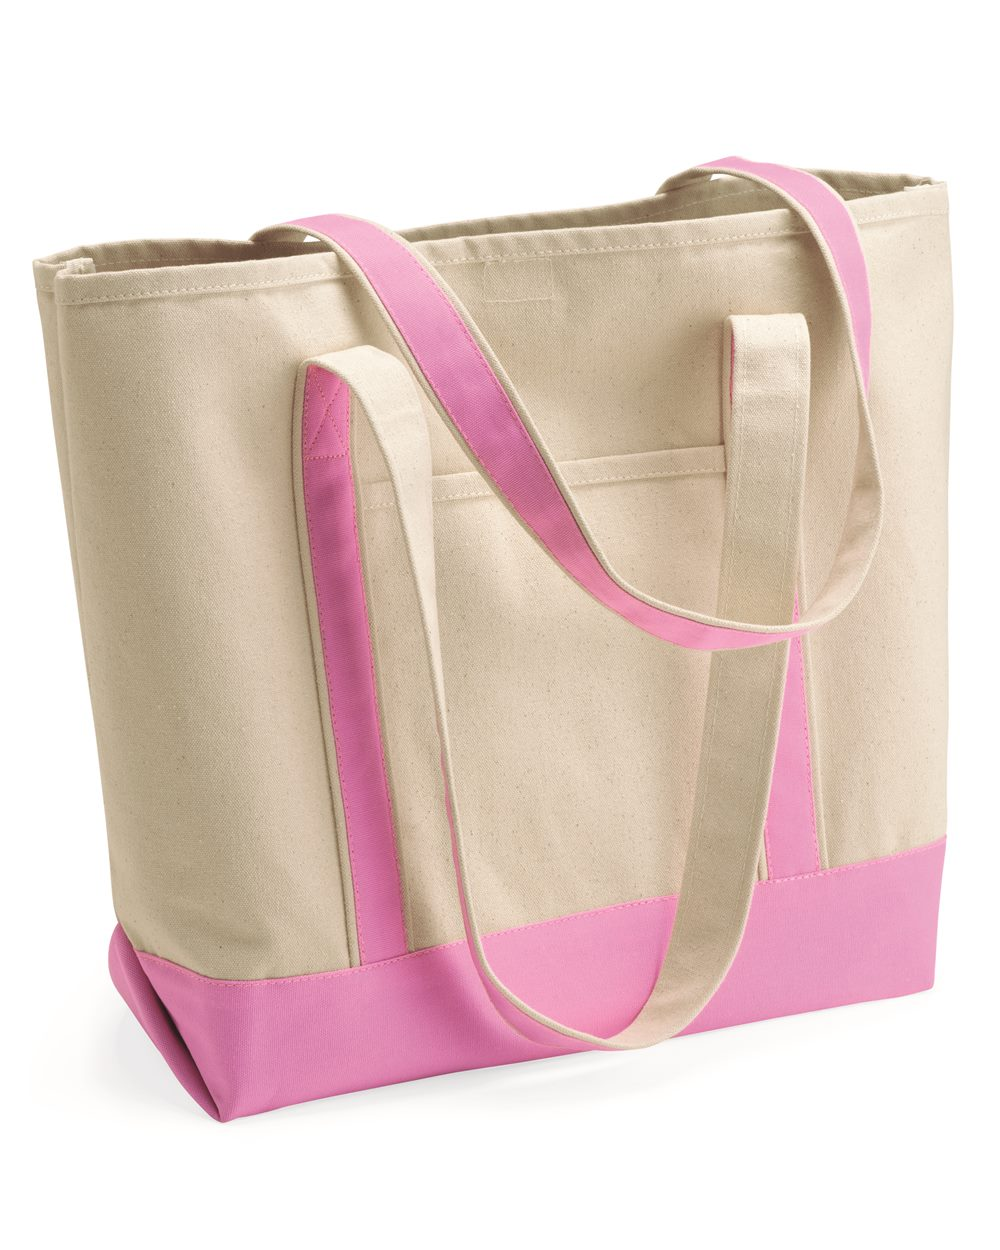 HYP HY802 - Small Beach Tote